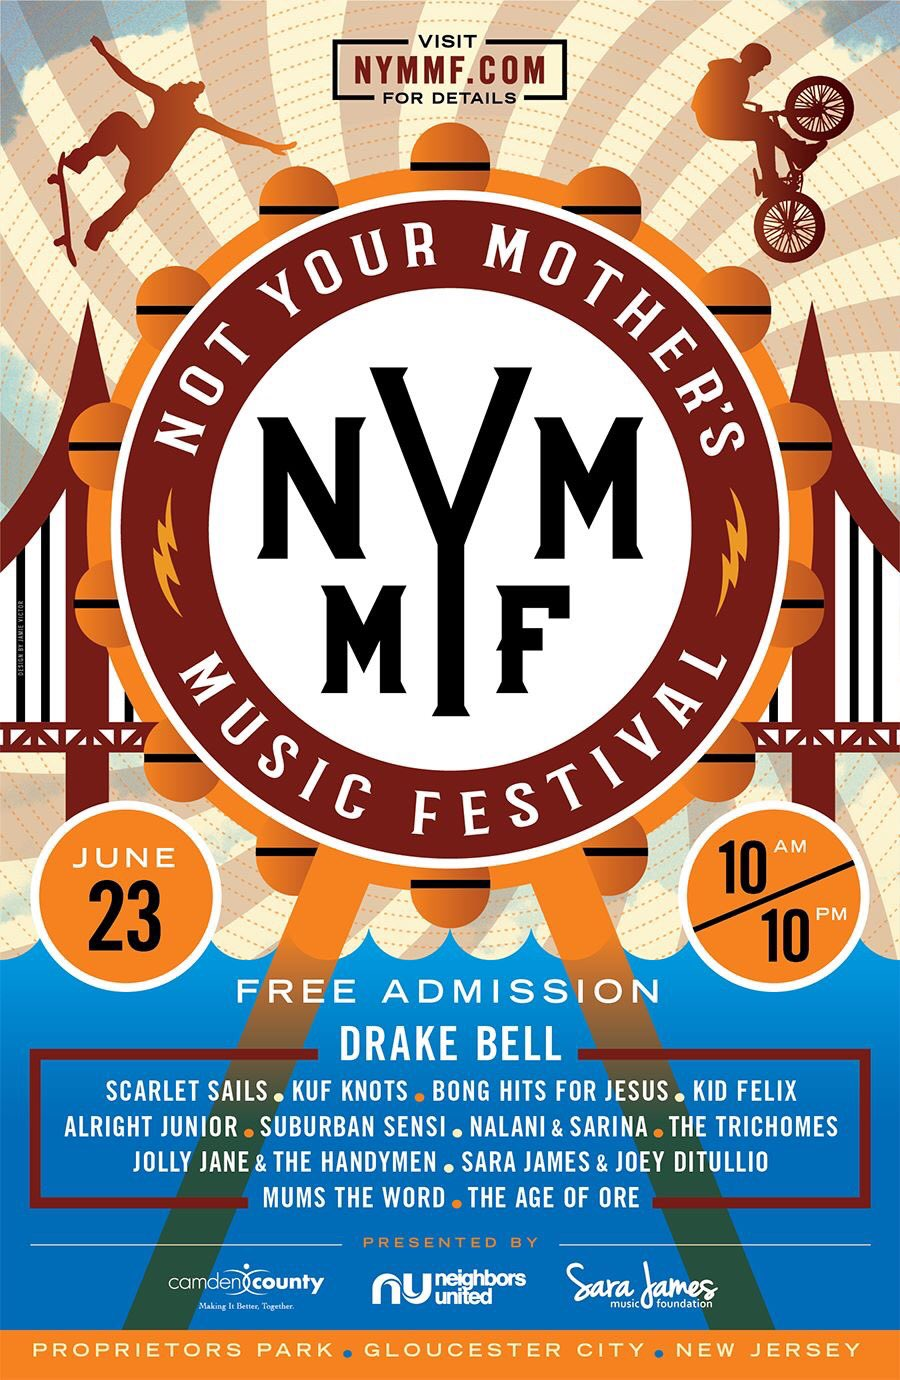 Heading to @NYMMF2018 today!! https://t.co/xn1RvAKFFg